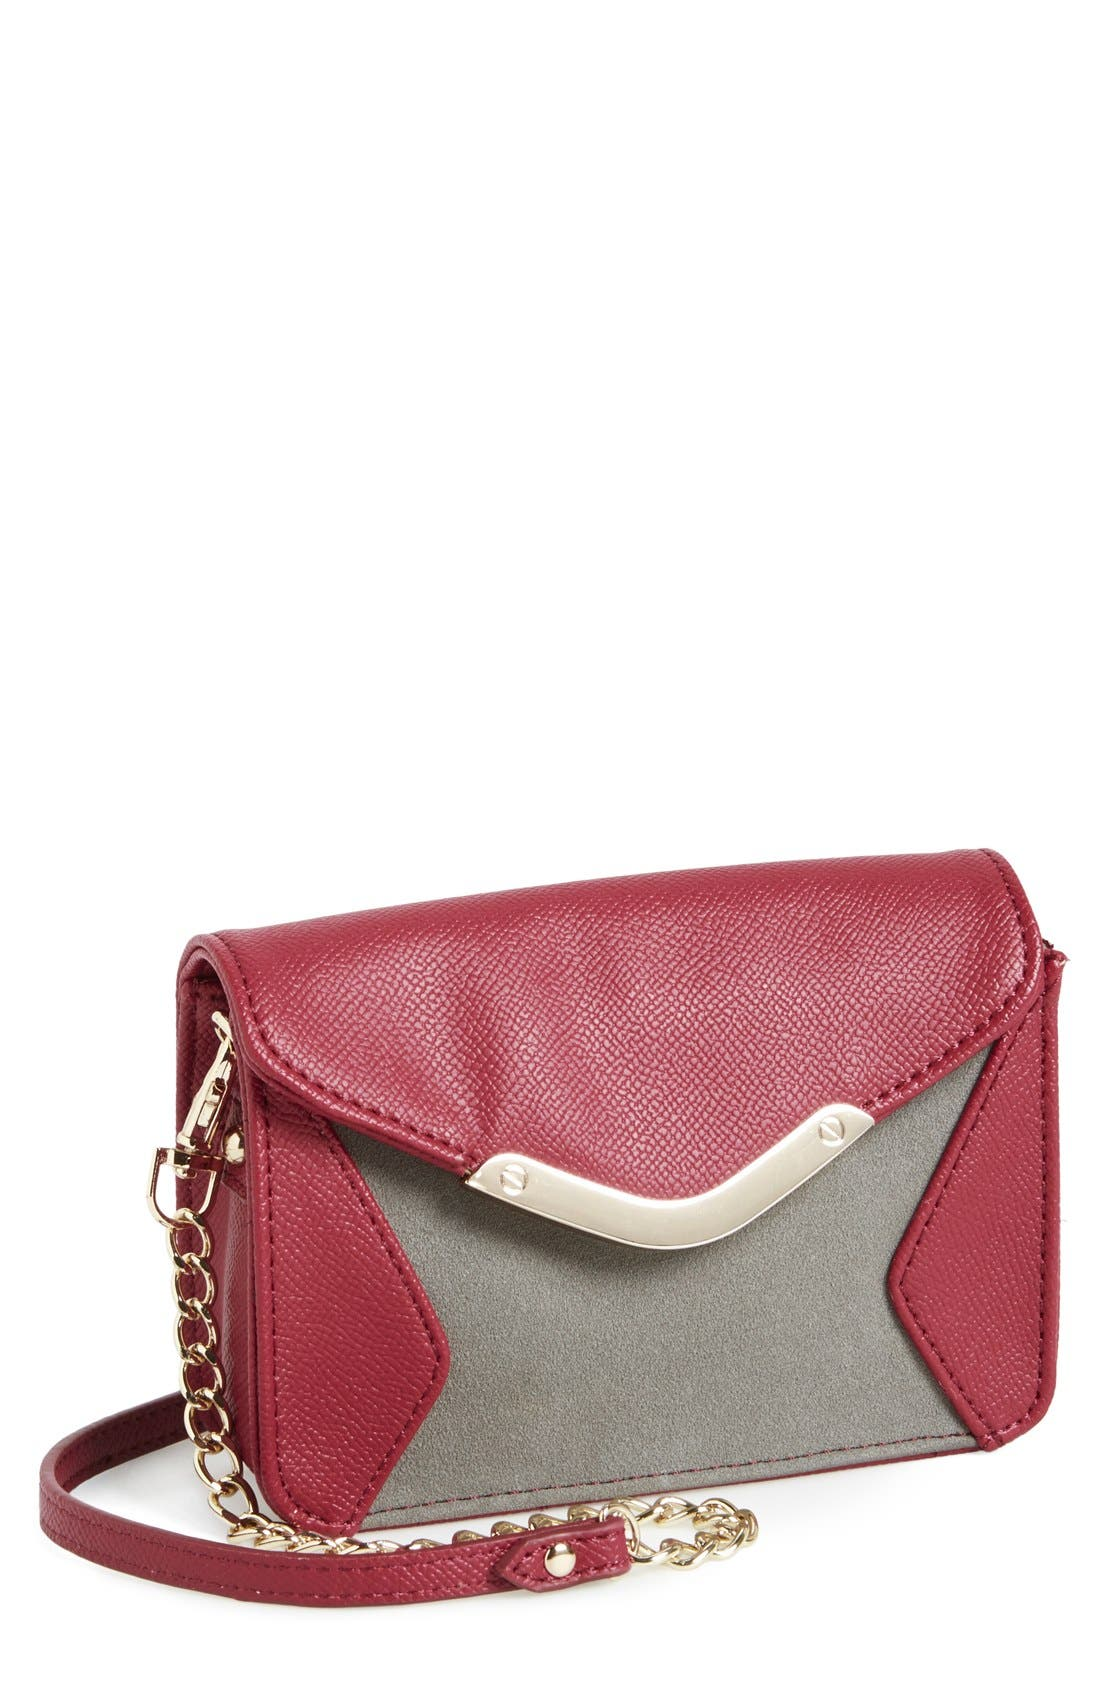 Main Image - POVERTY FLATS by rian Crossbody Bag